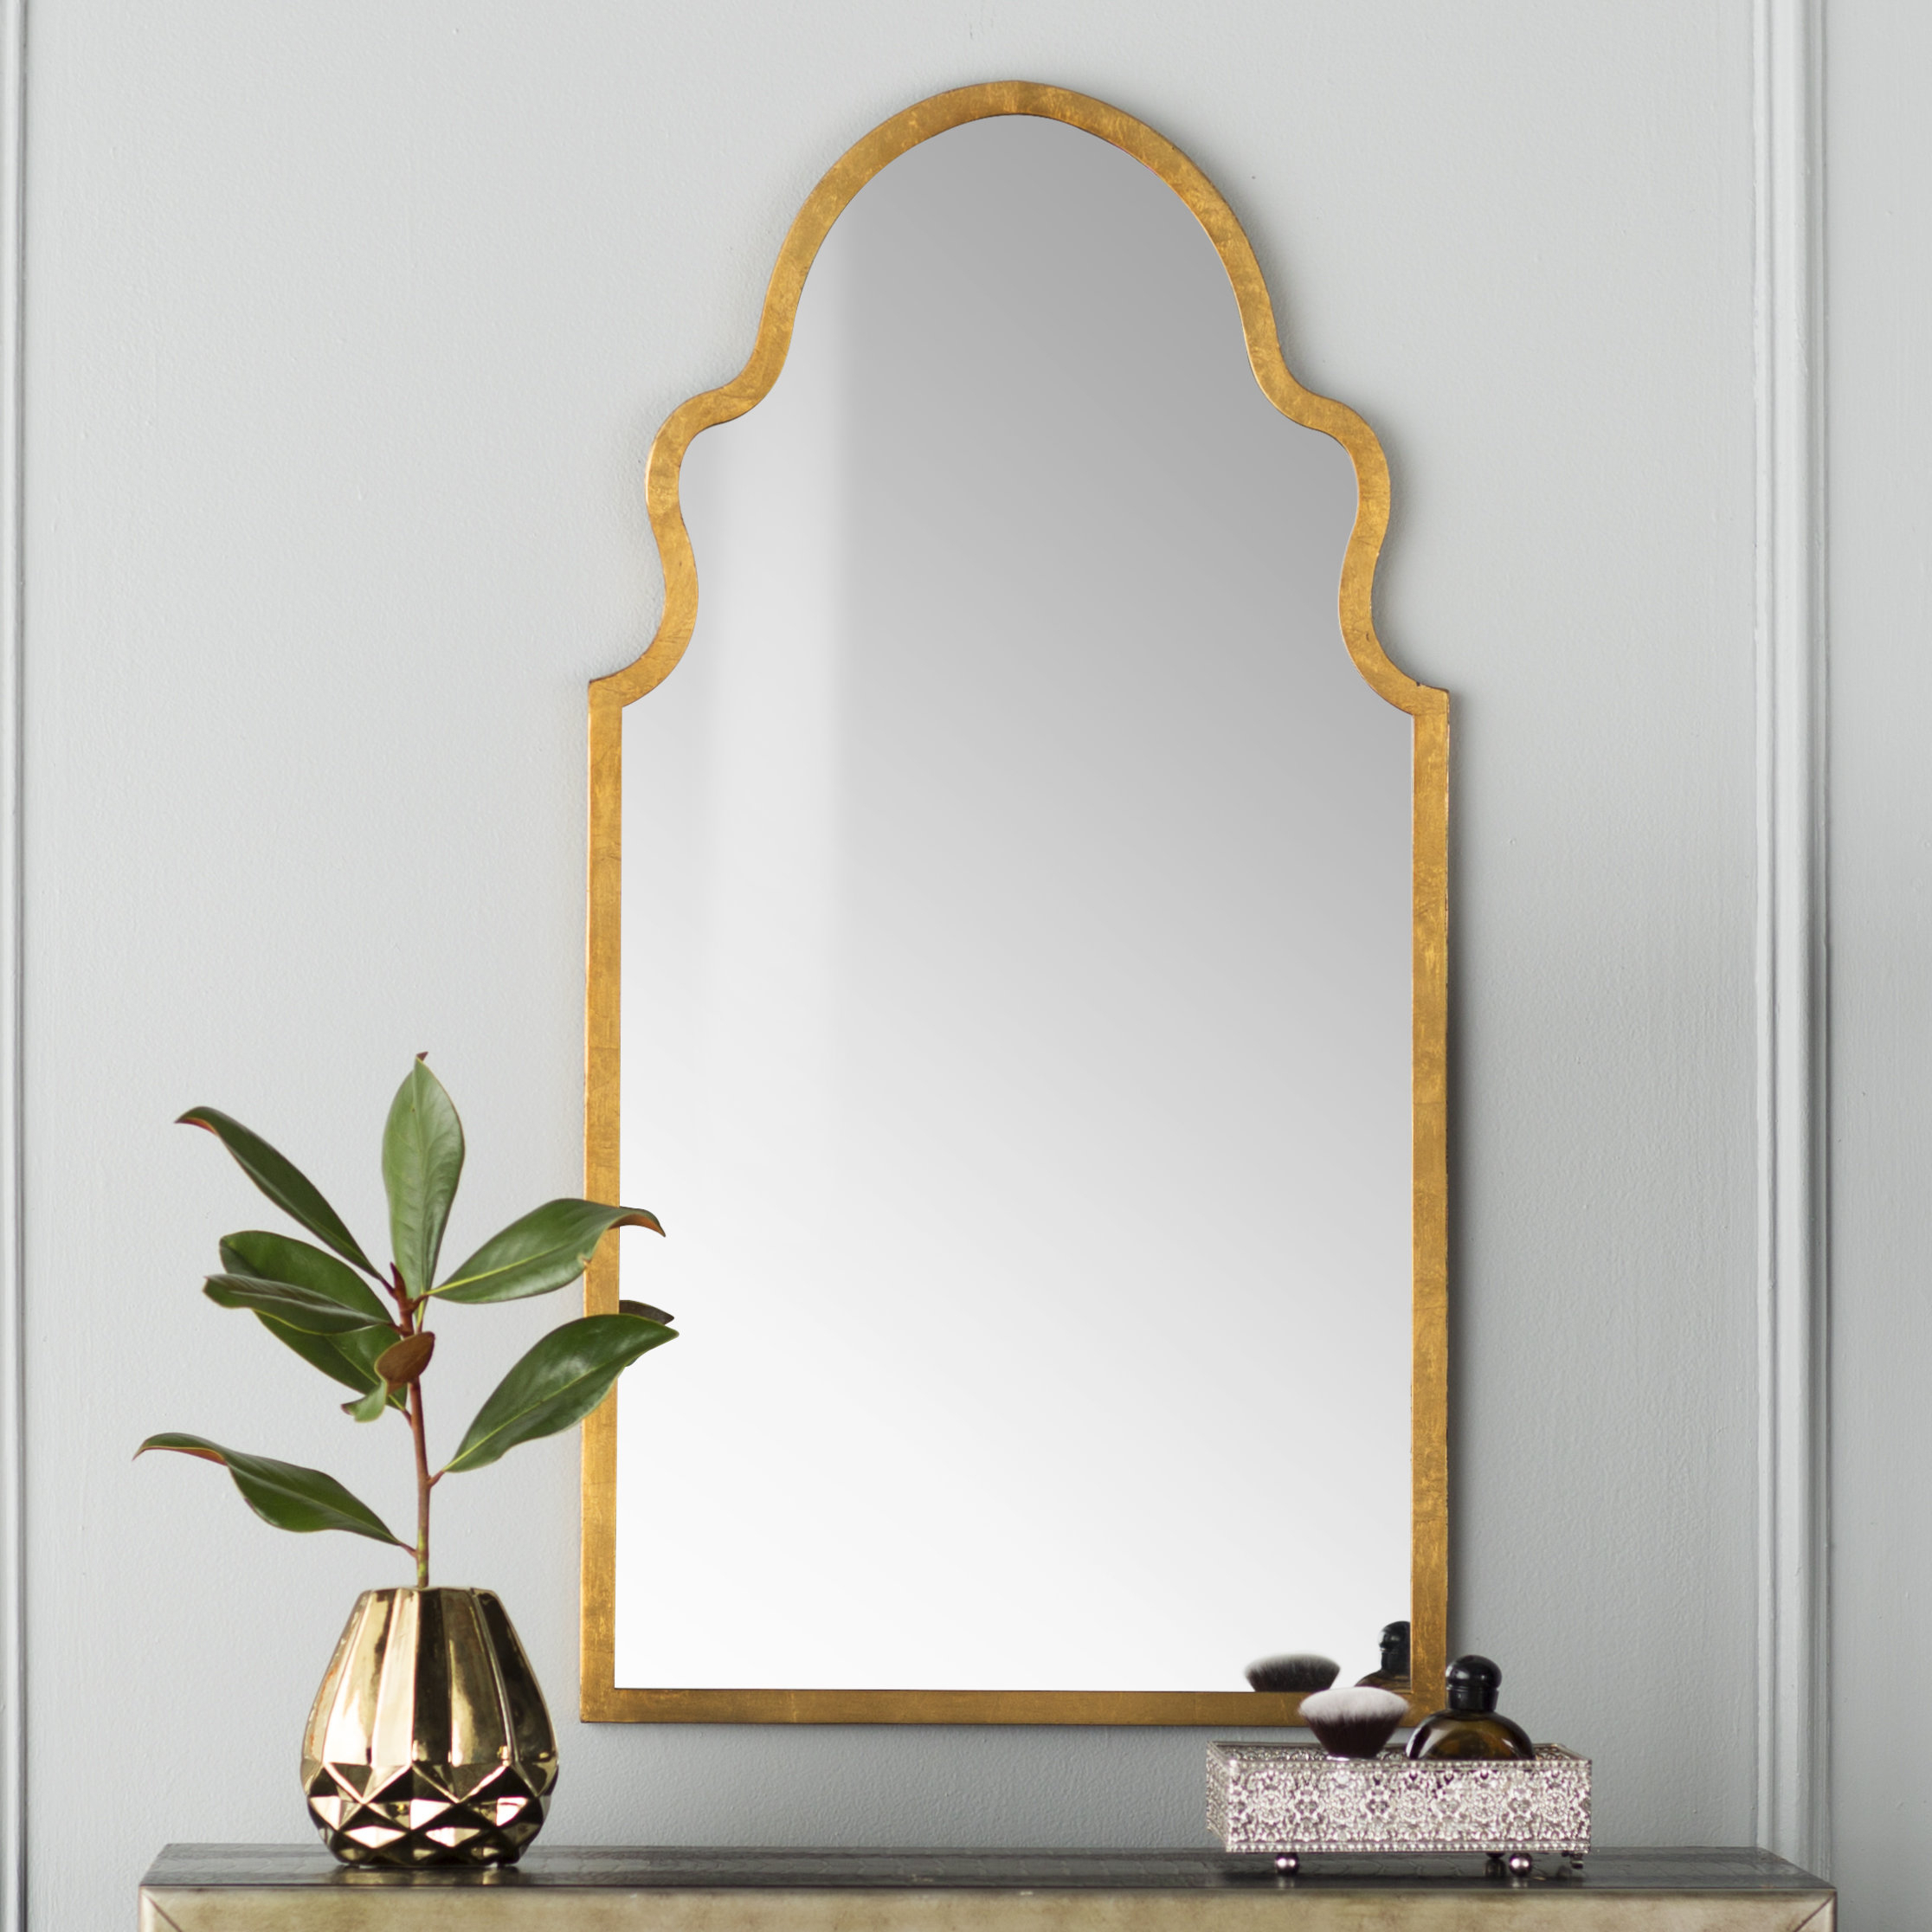 Menachem Modern & Contemporary Accent Mirror & Reviews Throughout Moseley Accent Mirrors (View 5 of 20)